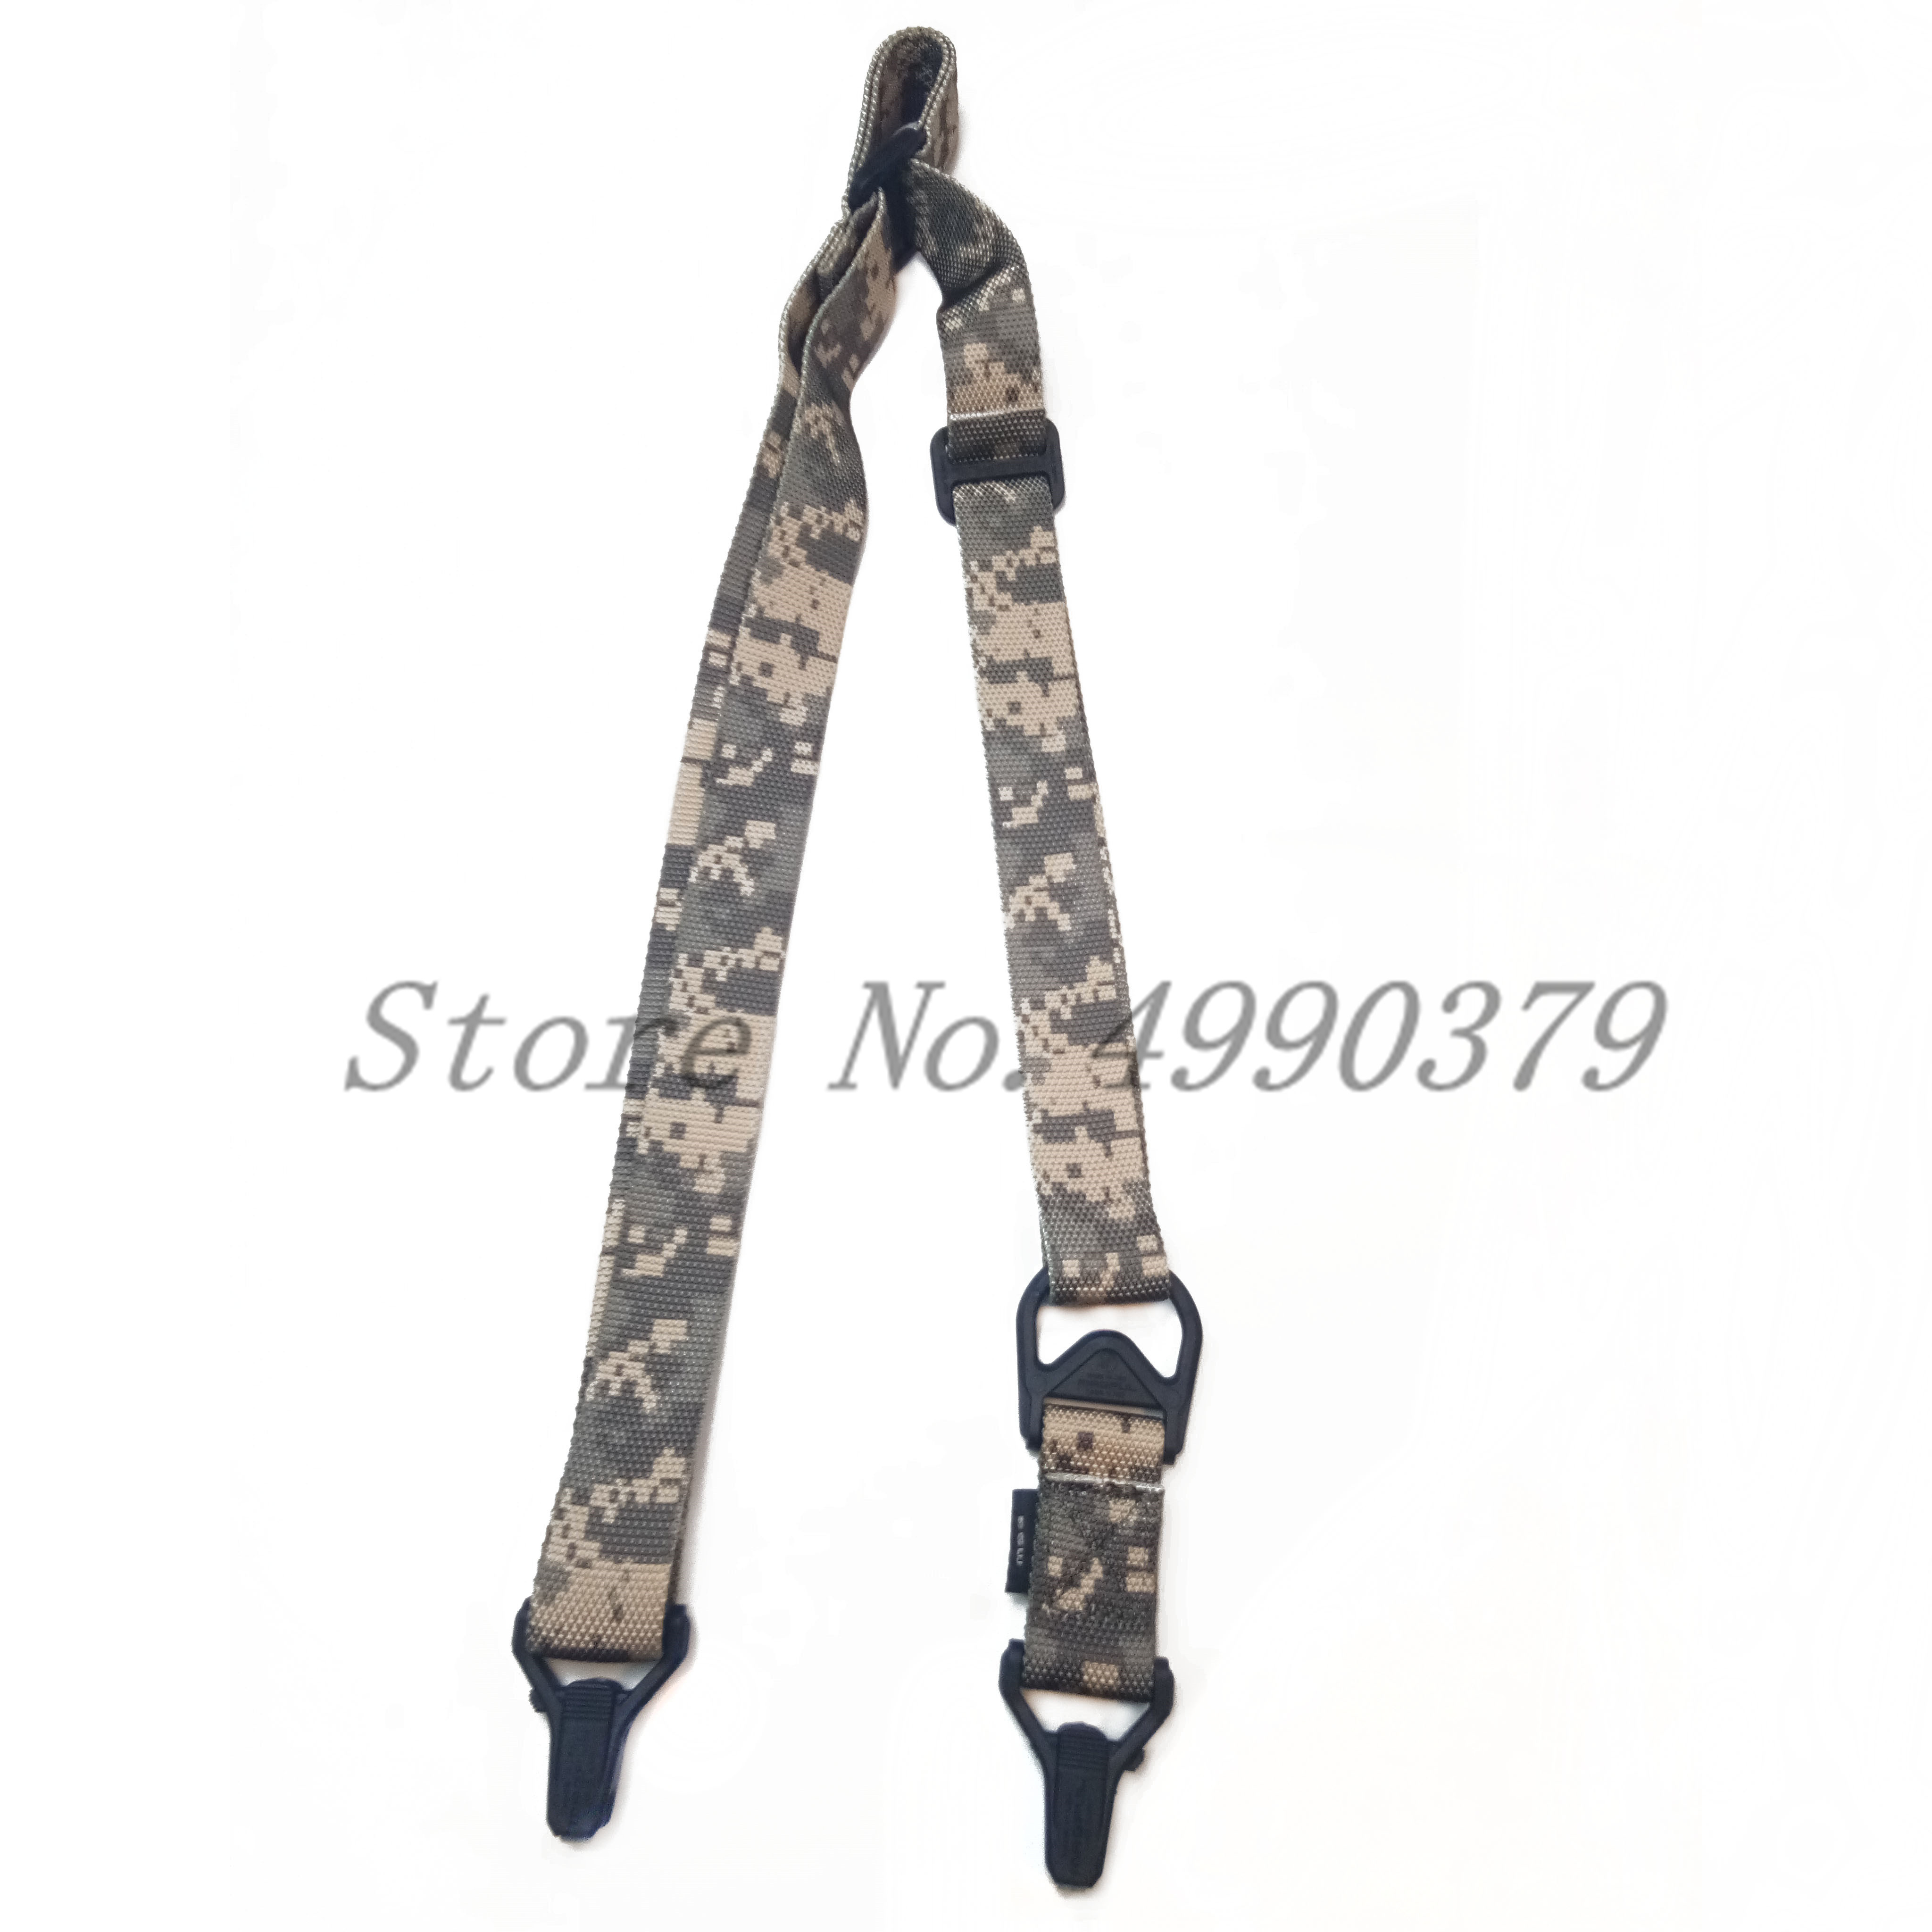 Image 5 - HANWILD  MS3 Tactical Sling Multi Mission Rifles Carry Sling Adjustable Length Shoulder Straps Wholesale-in Hunting Gun Accessories from Sports & Entertainment